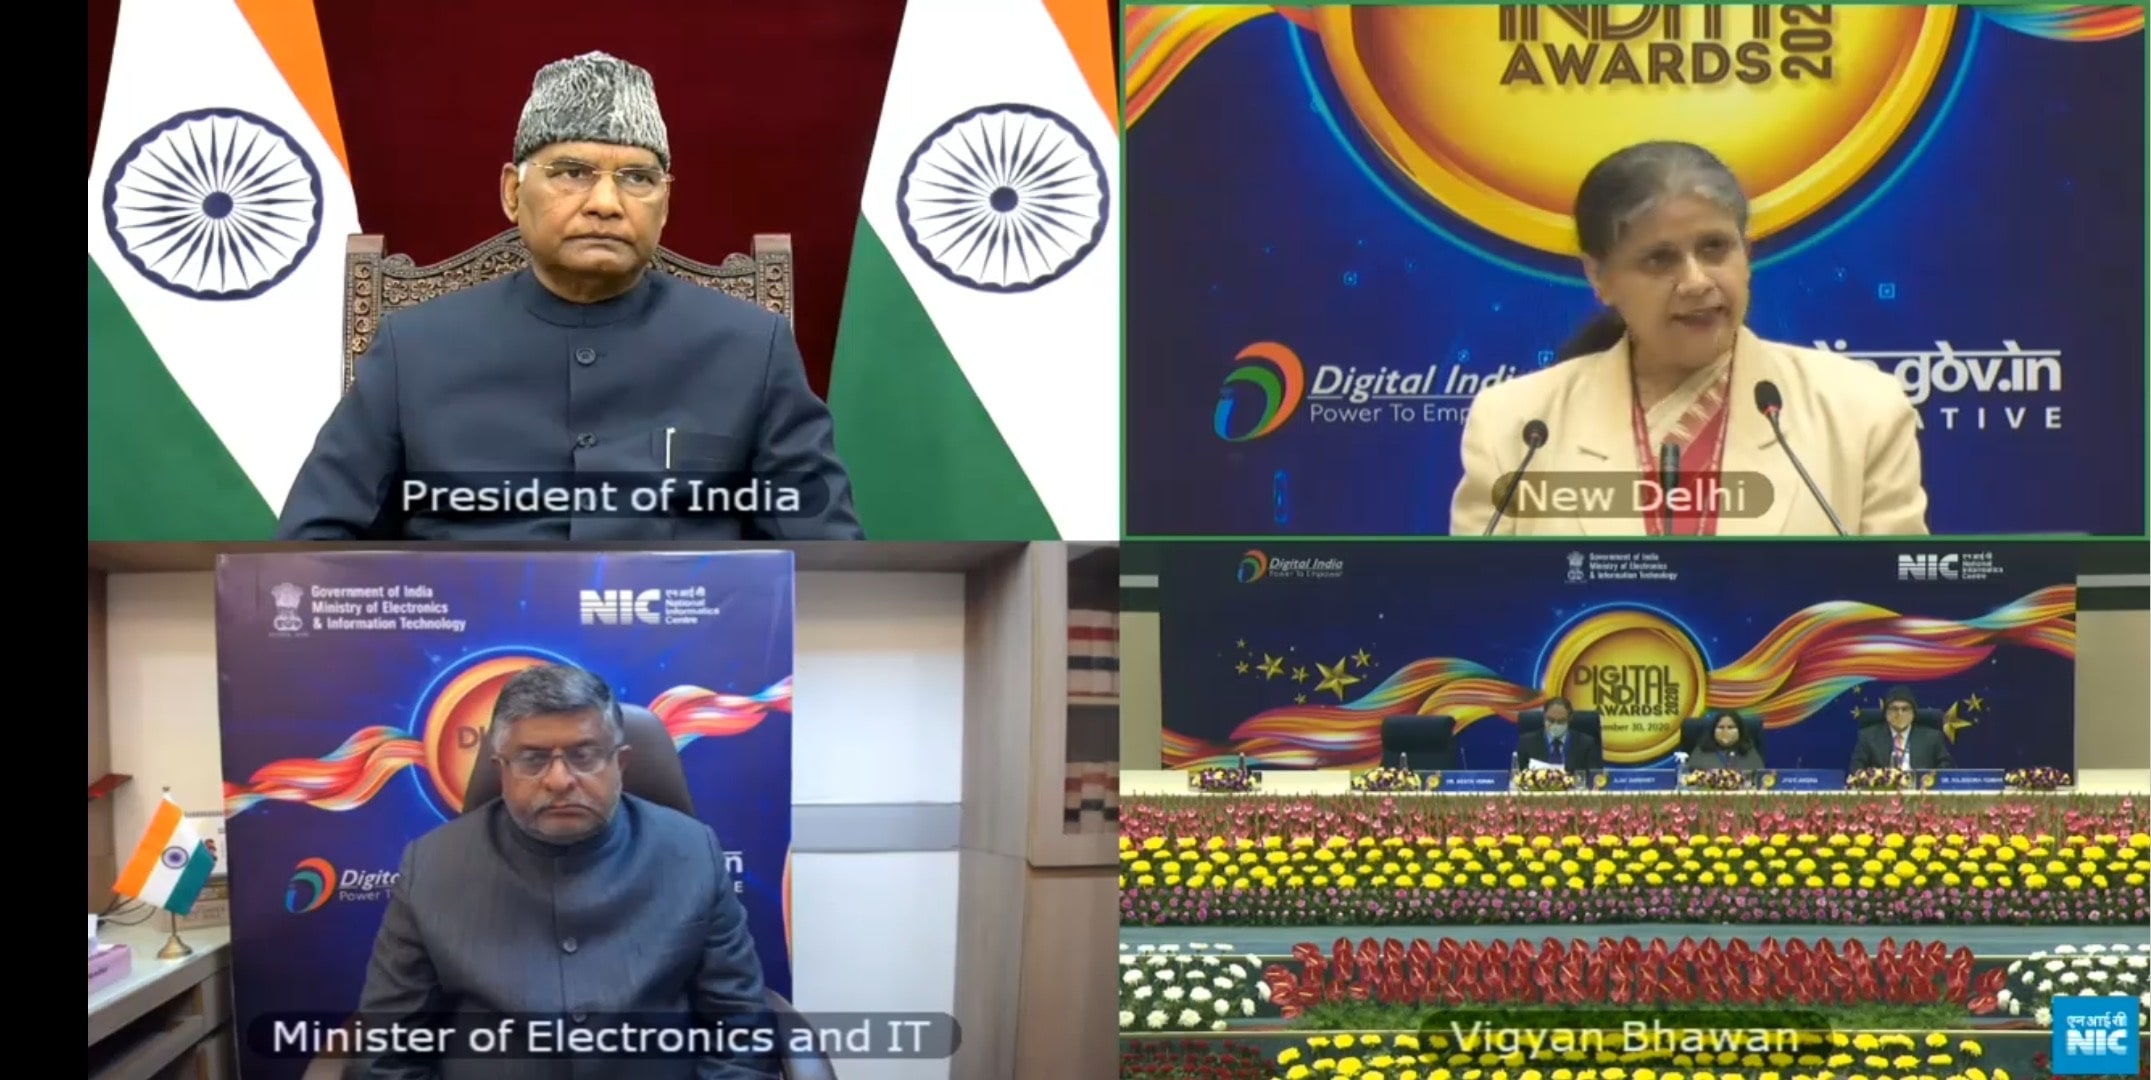 modi-govt-gives-digital-india-awards-2020-to-24-teams